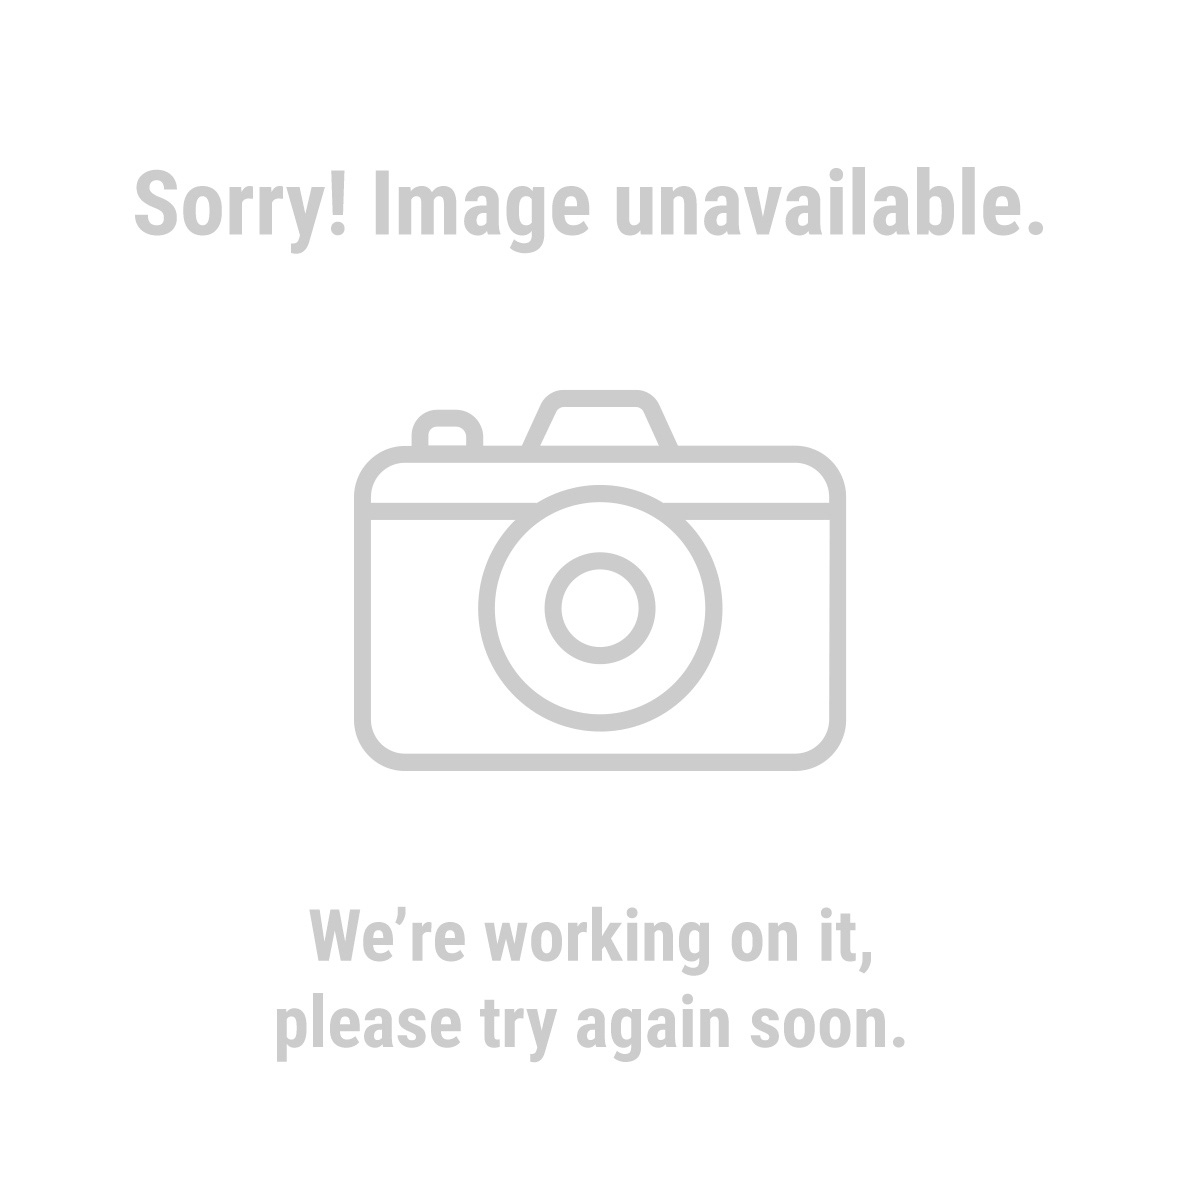 Warrior 528 115 Piece High Speed Drill Bit Set with Index